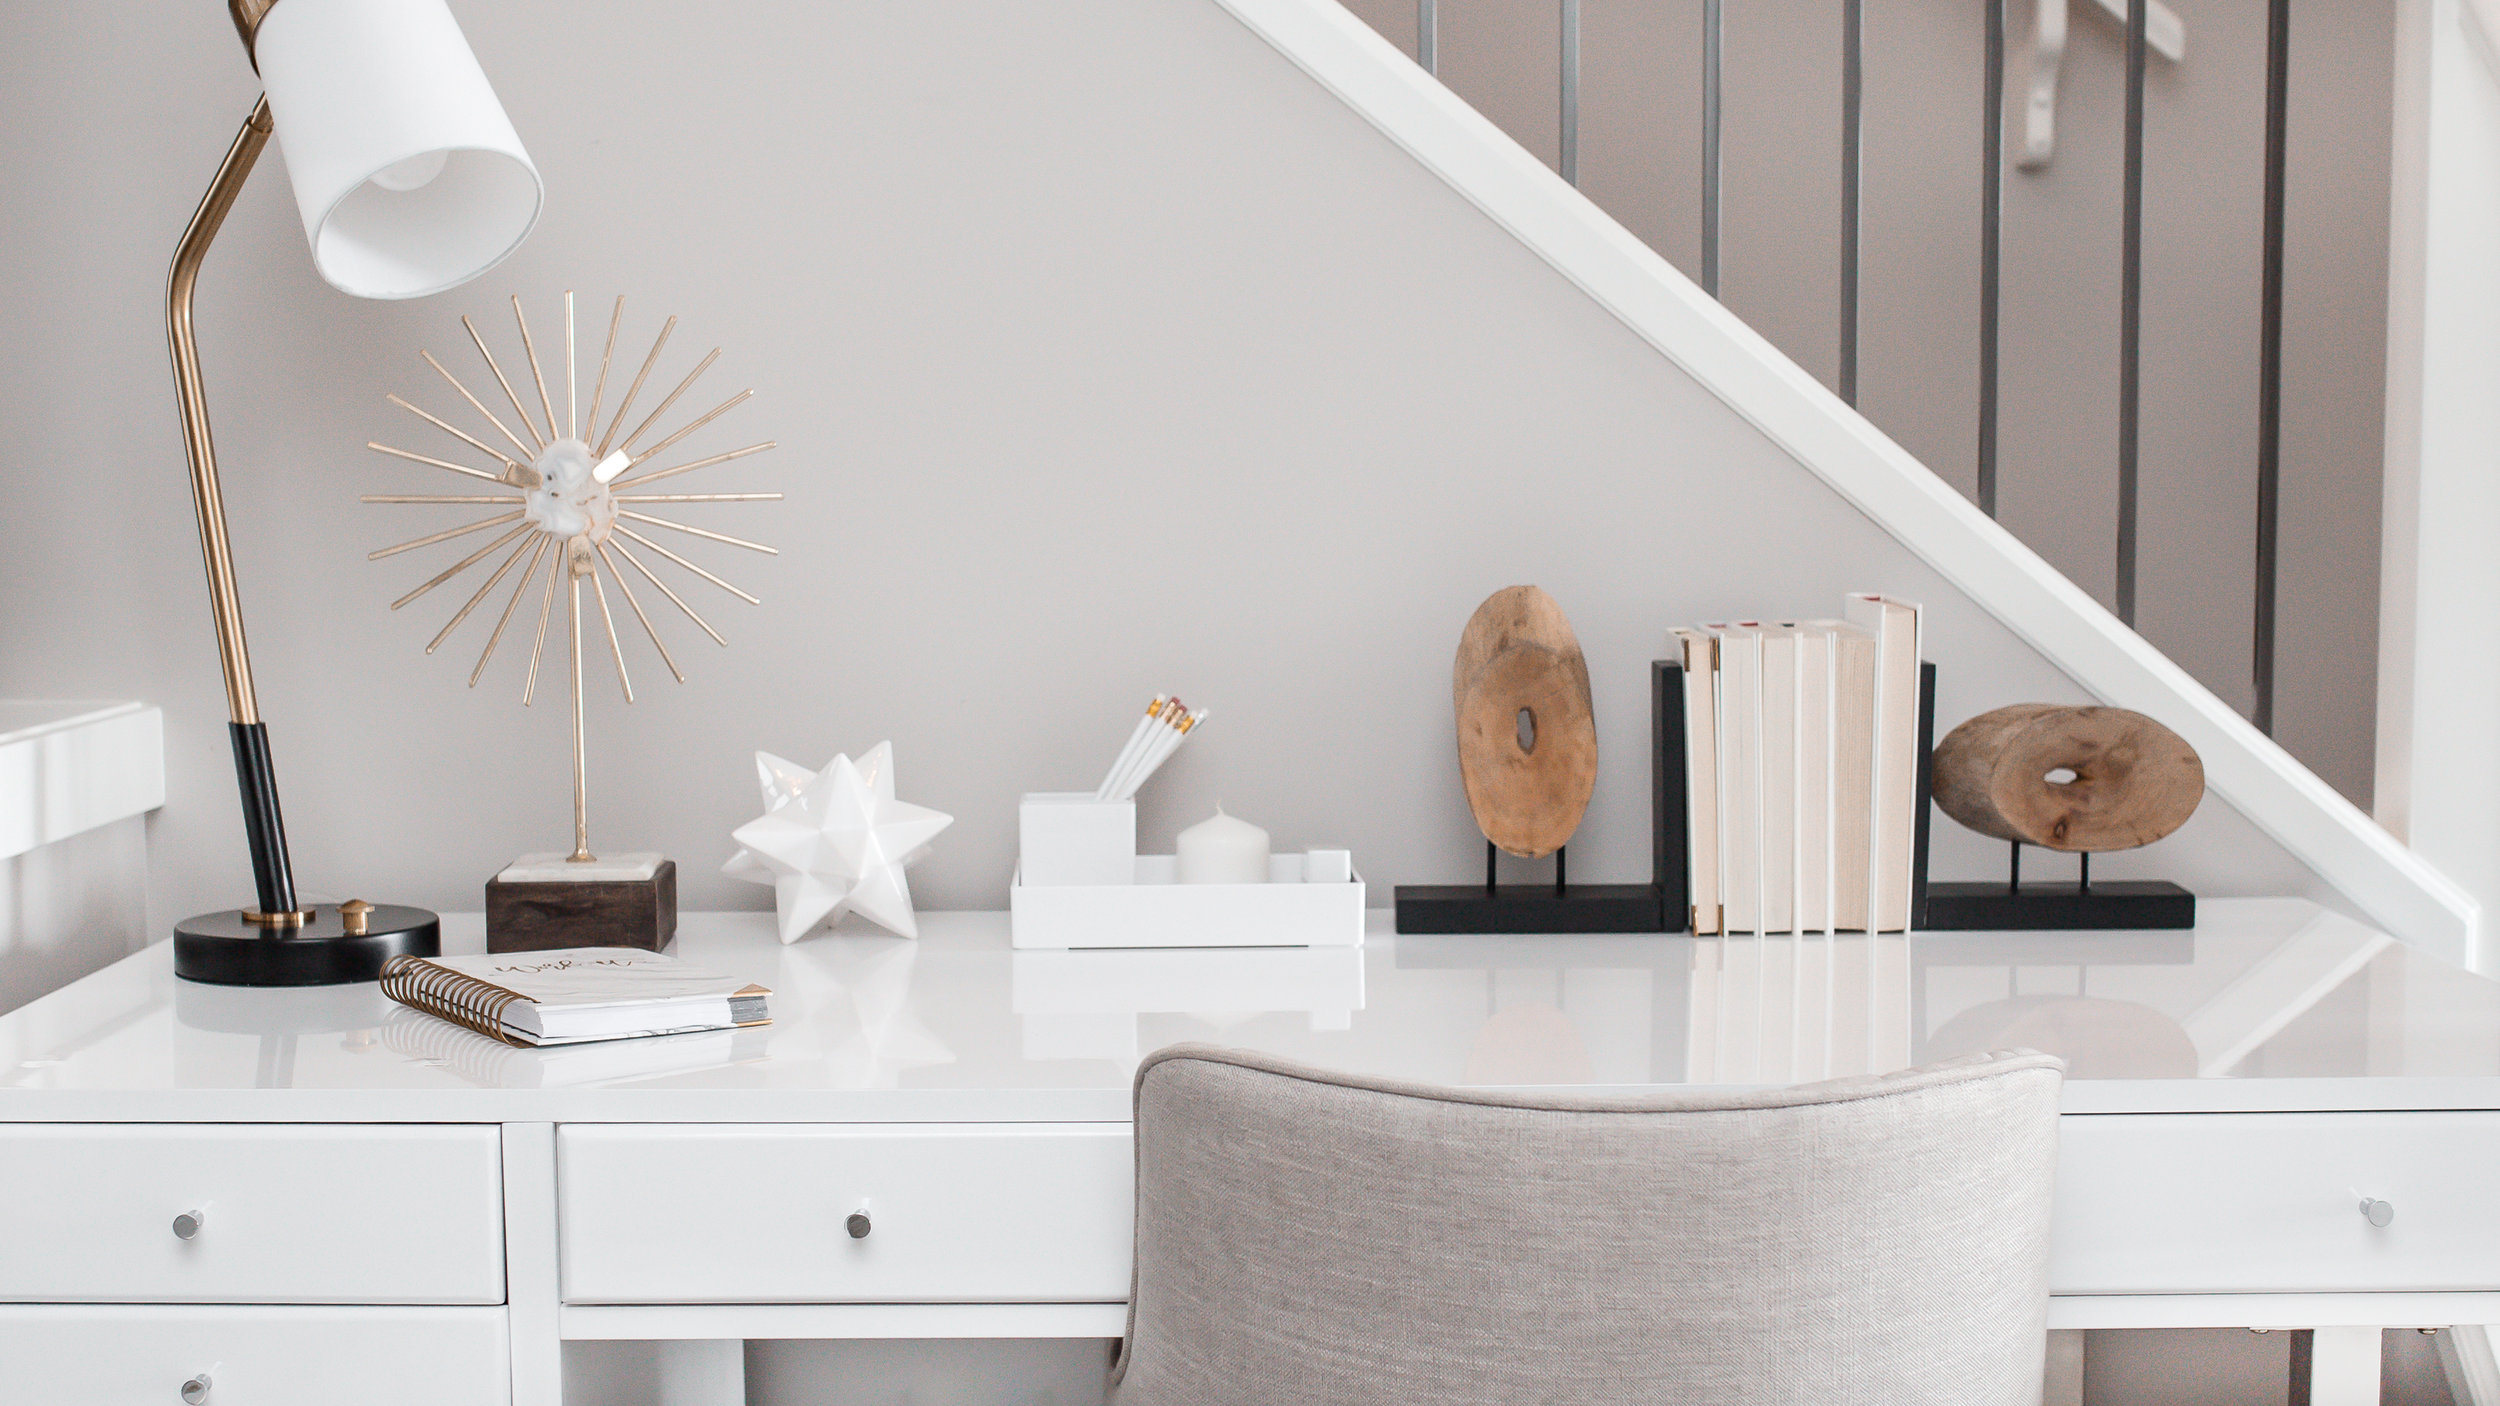 A white desk with office decor and an upholstered chair.